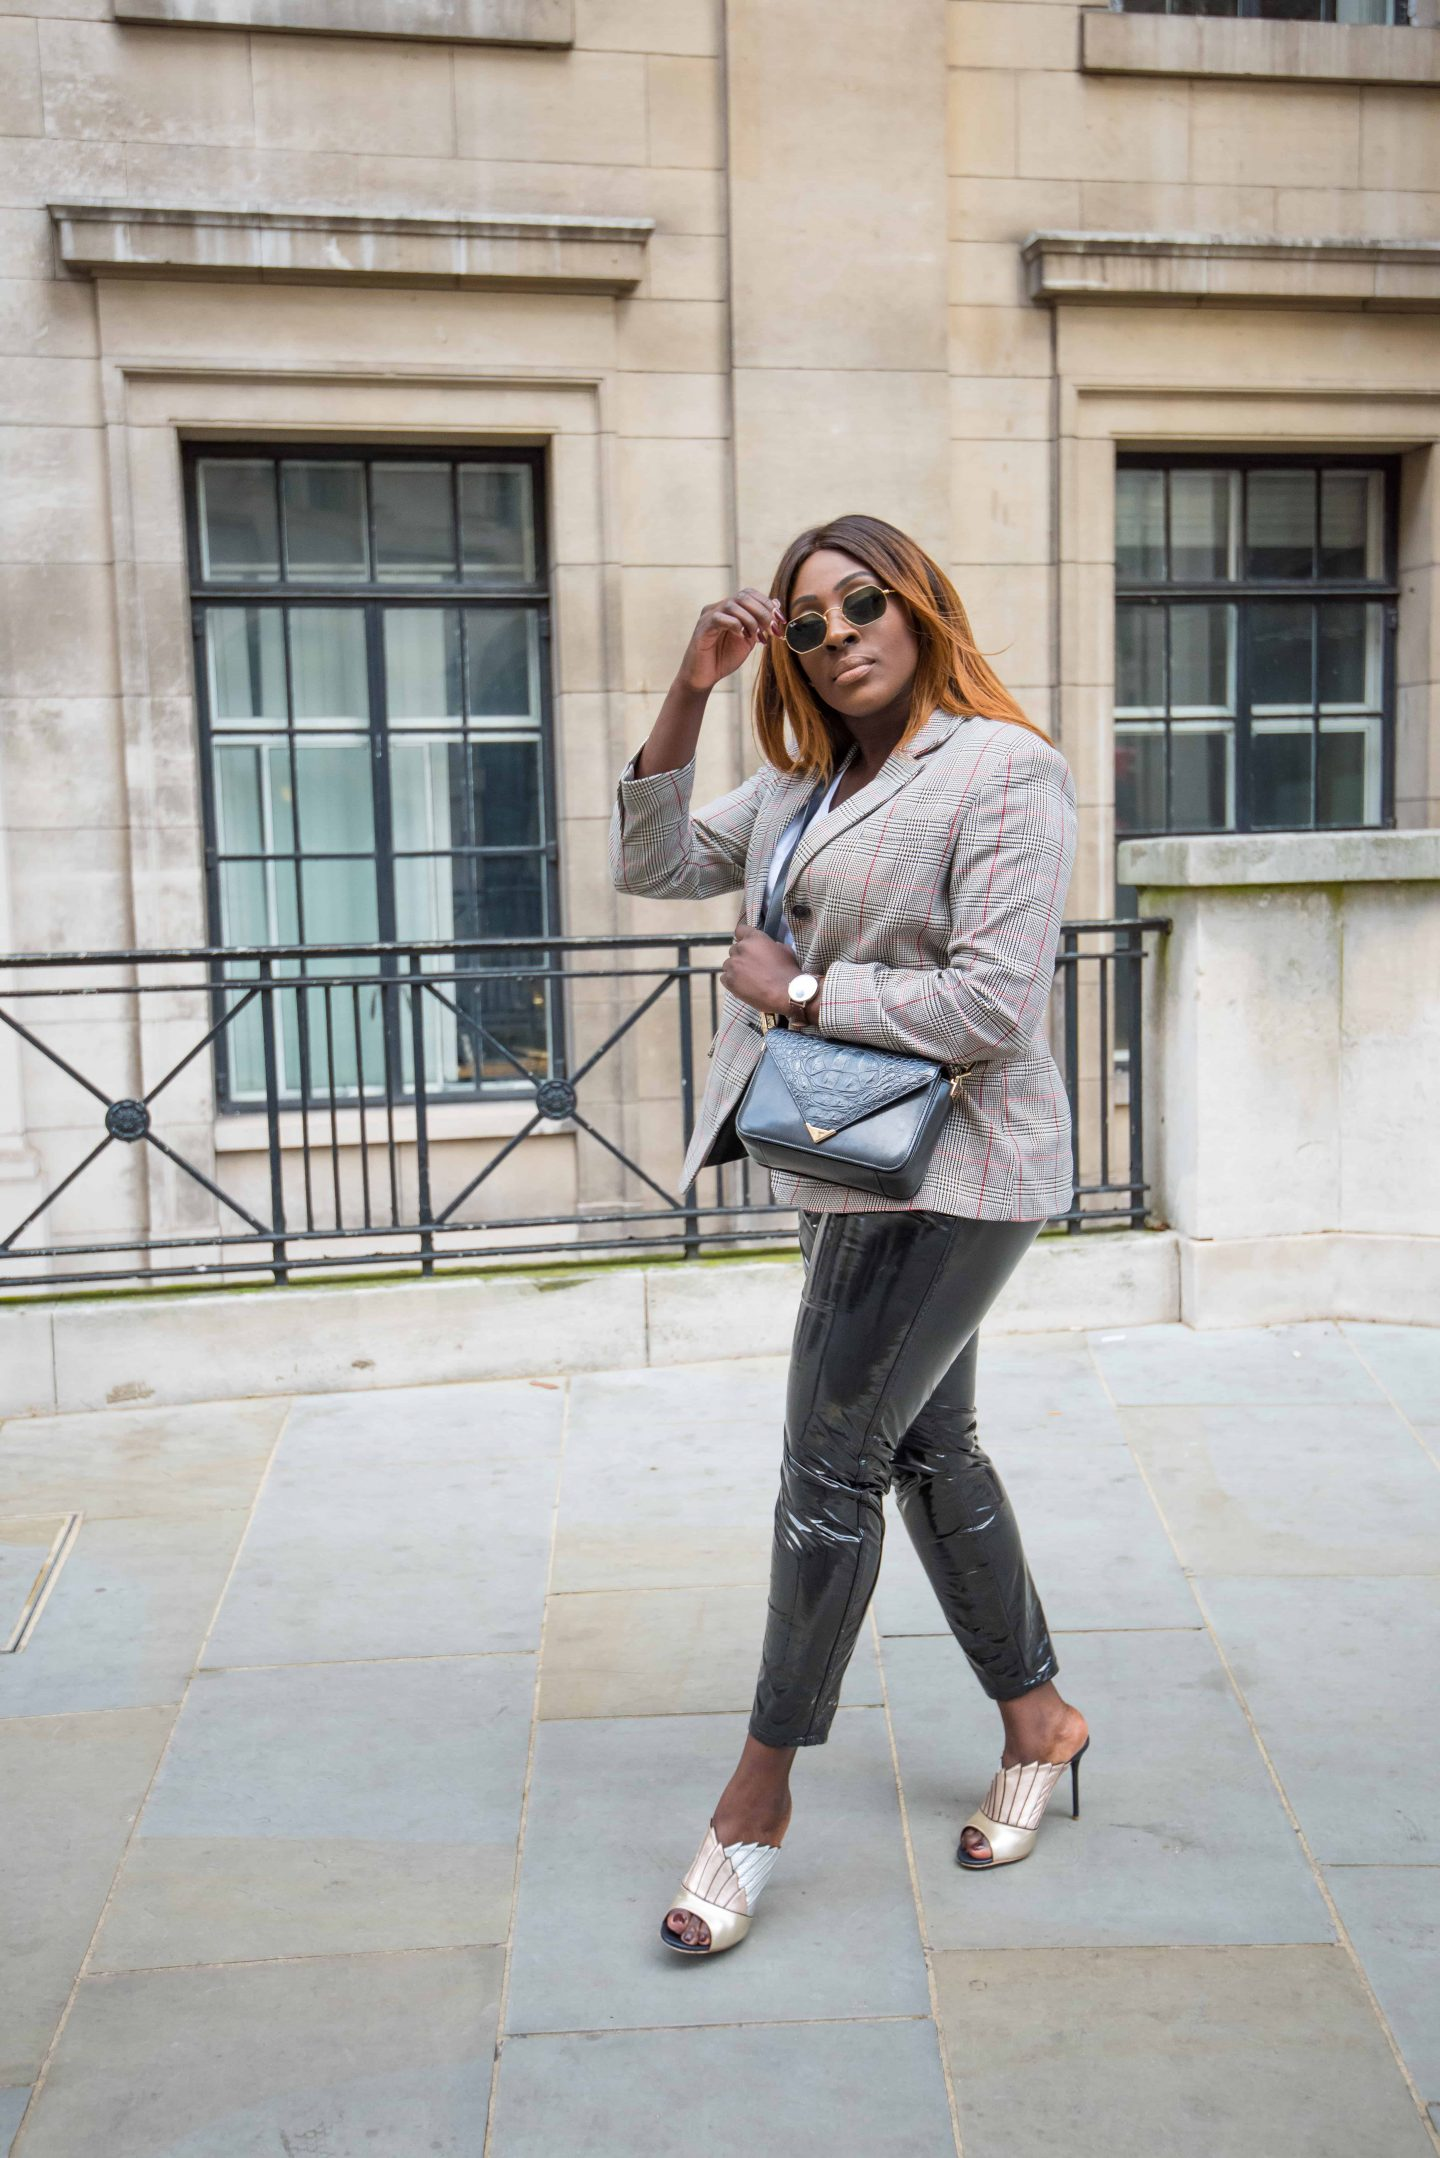 Autumn Workwear & The Vinyl Affect 2 - Zara check blazer - Alexander Wang Bag - vinyl trousers - malone soulier mules - Style and the Sass